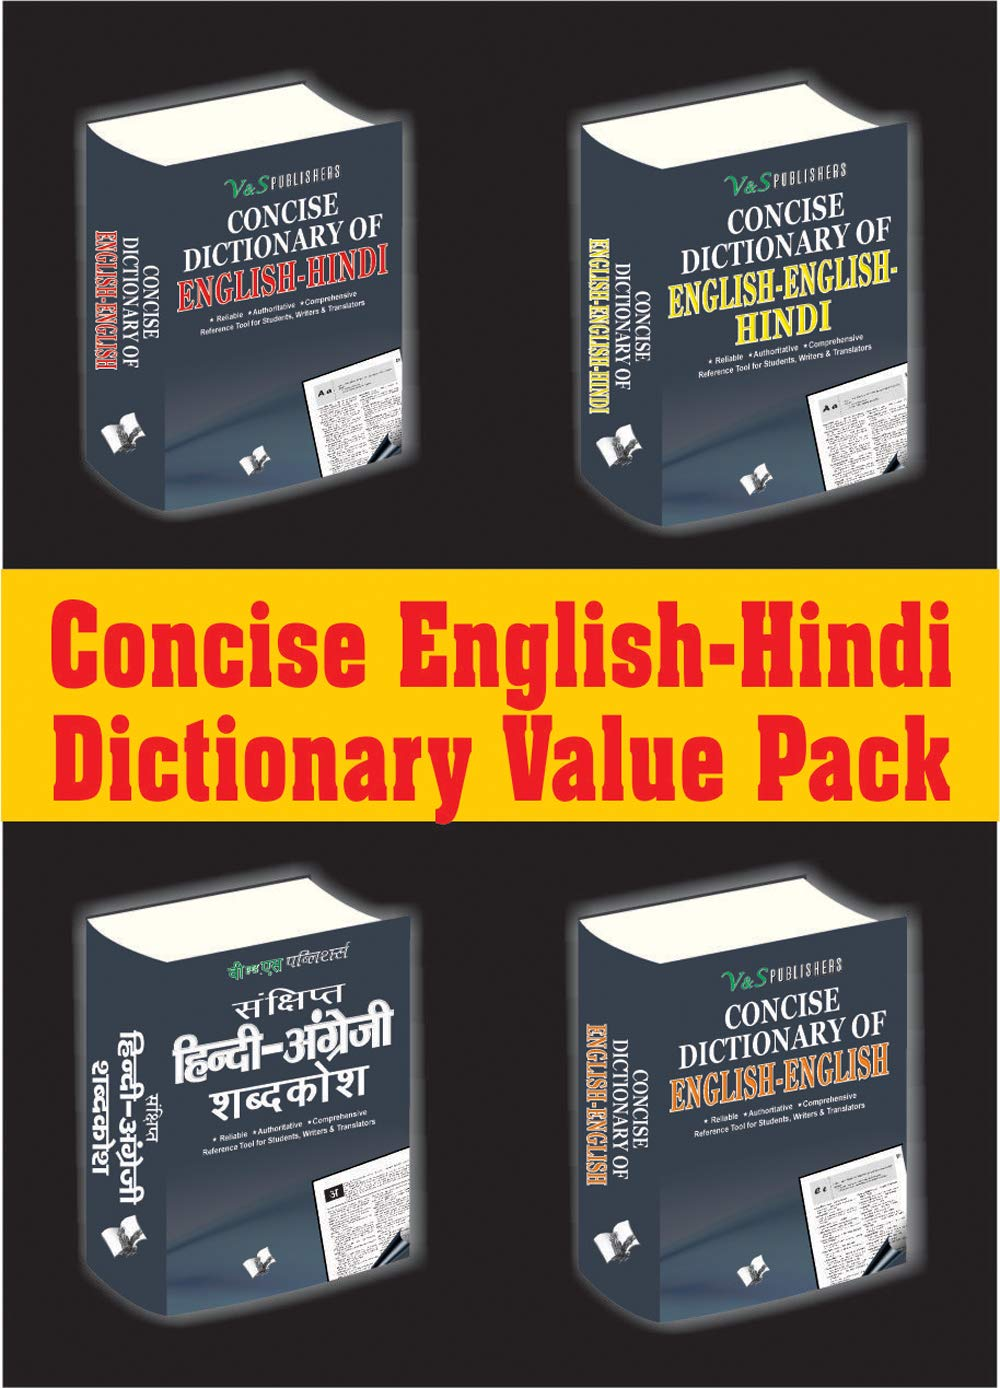 Concise English-Hindi Dictionary Value Pack: Accurate Meaning of English Words In Hindi for Improved Writing, Better Translation